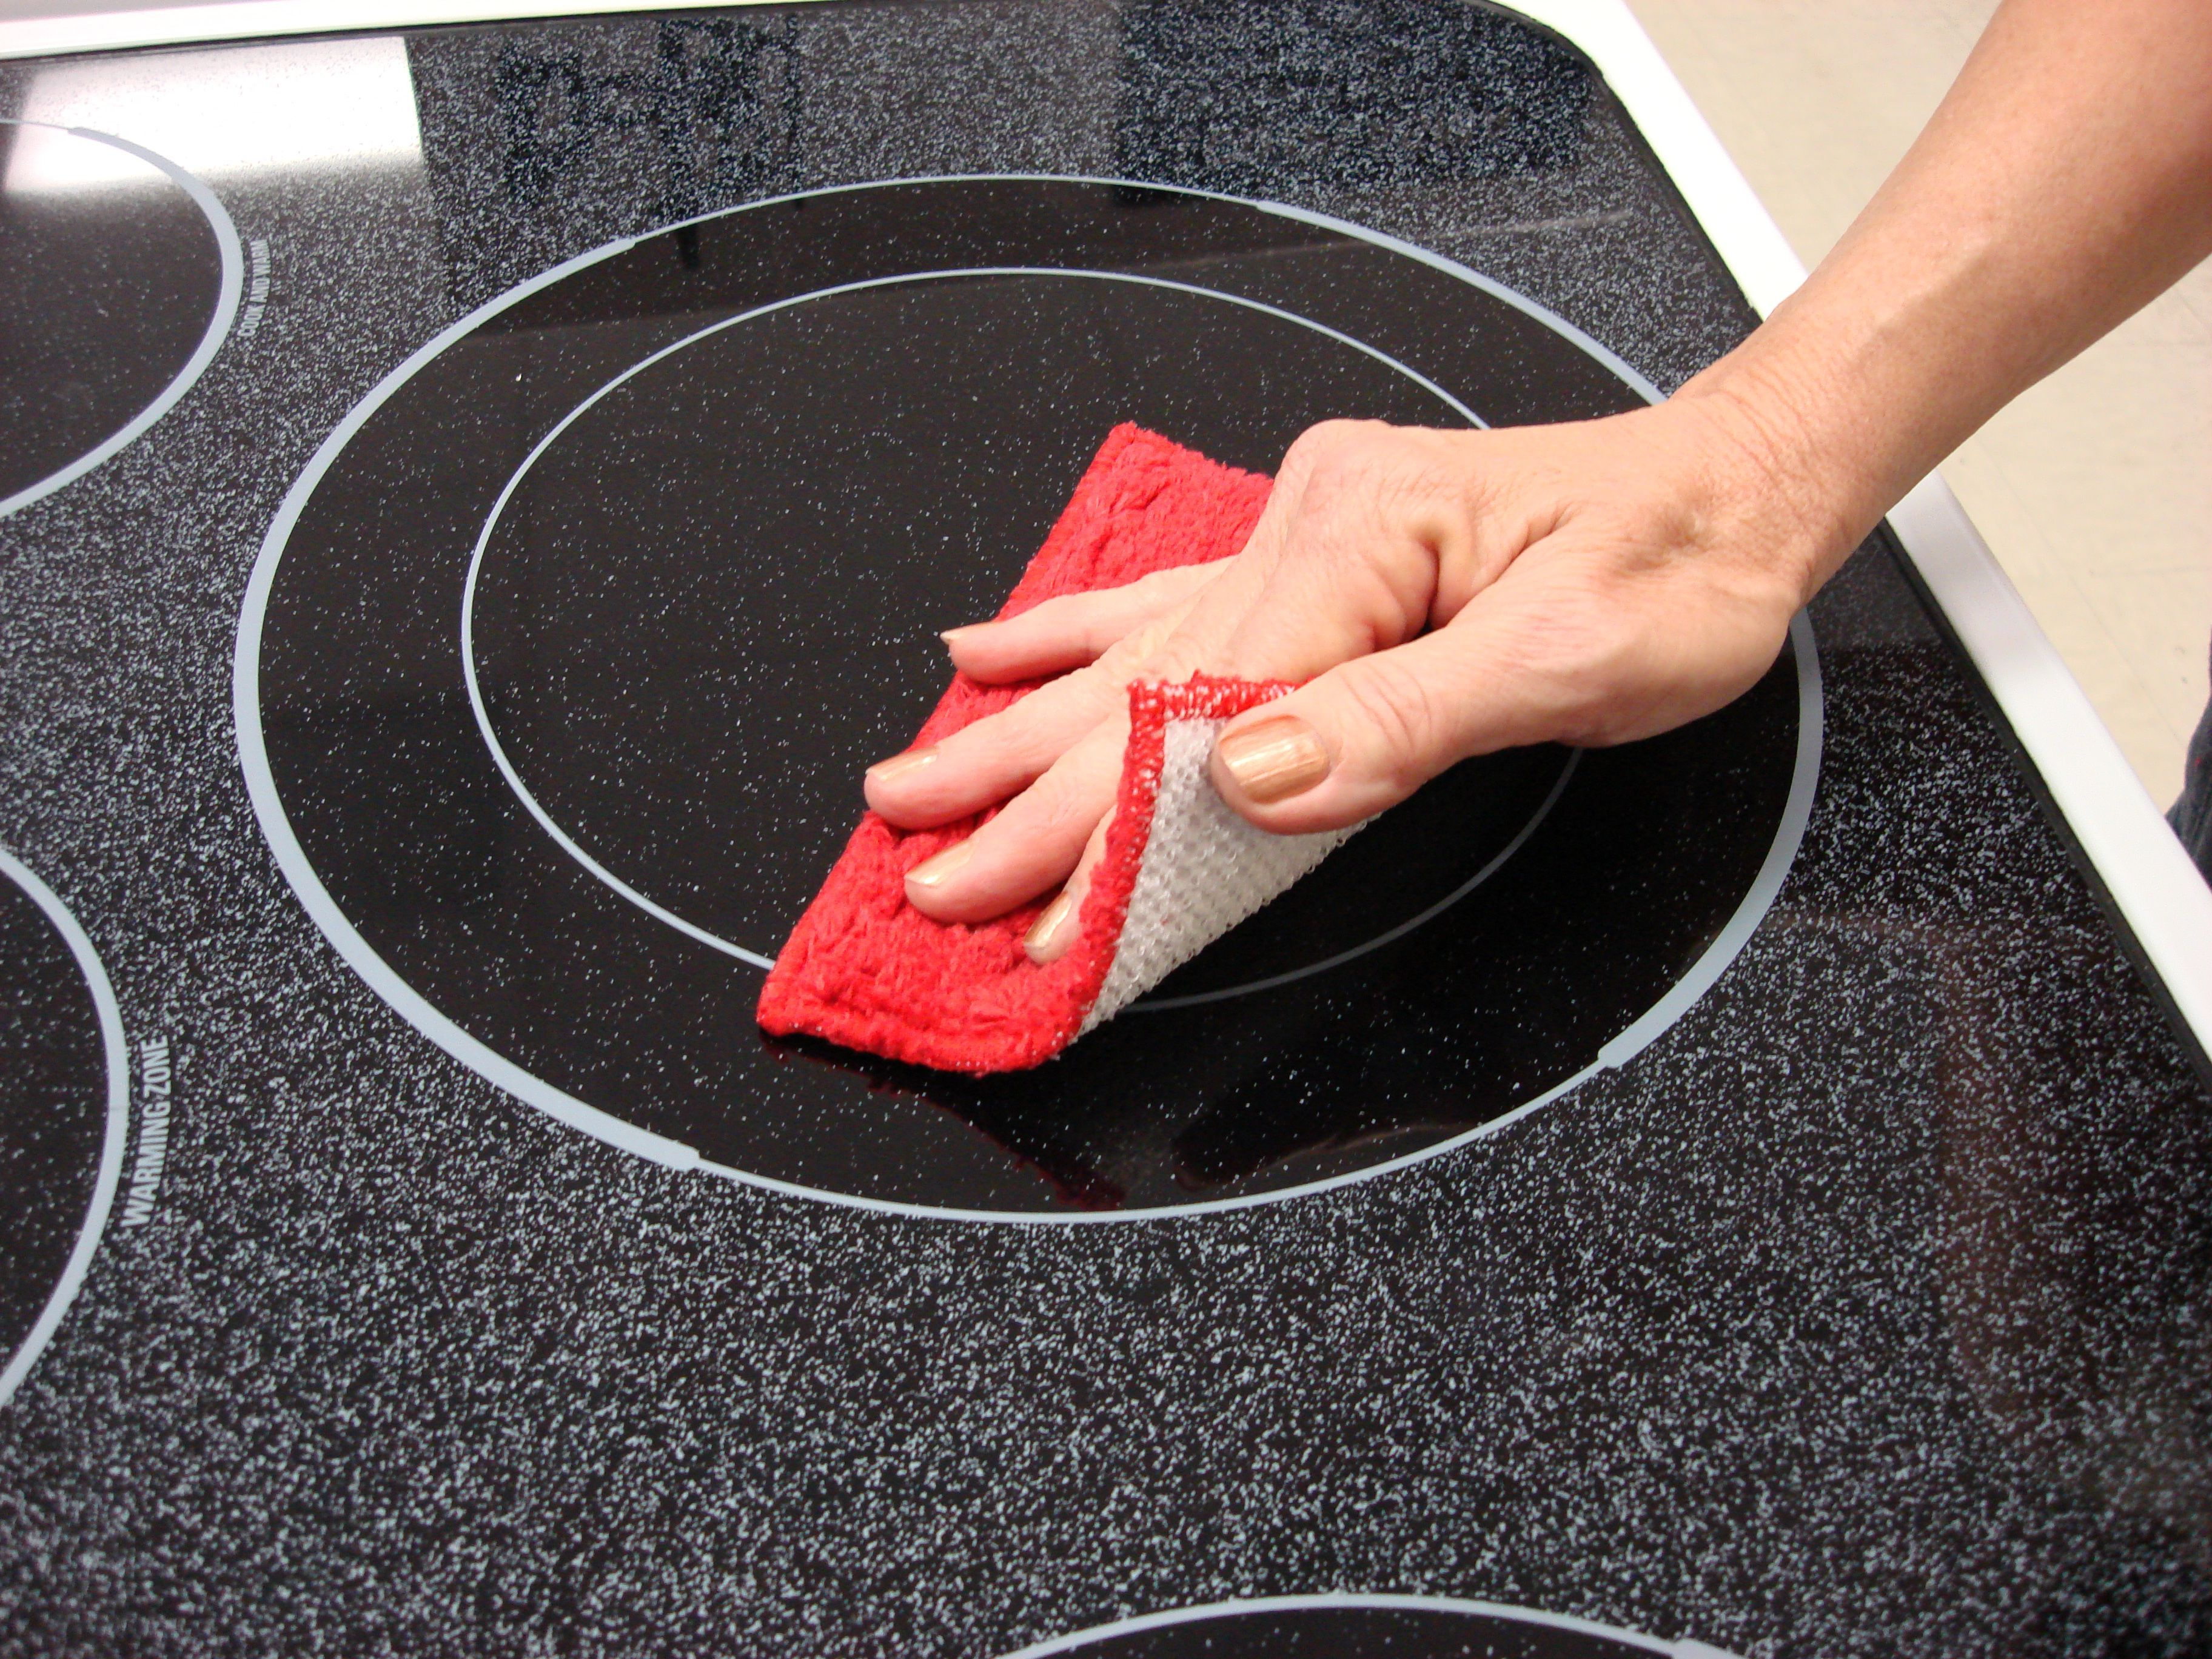 The Shrubbie is great for stove tops, sinks, teflon pans, golf clubs! non scratch!!!! even cleans the shower!